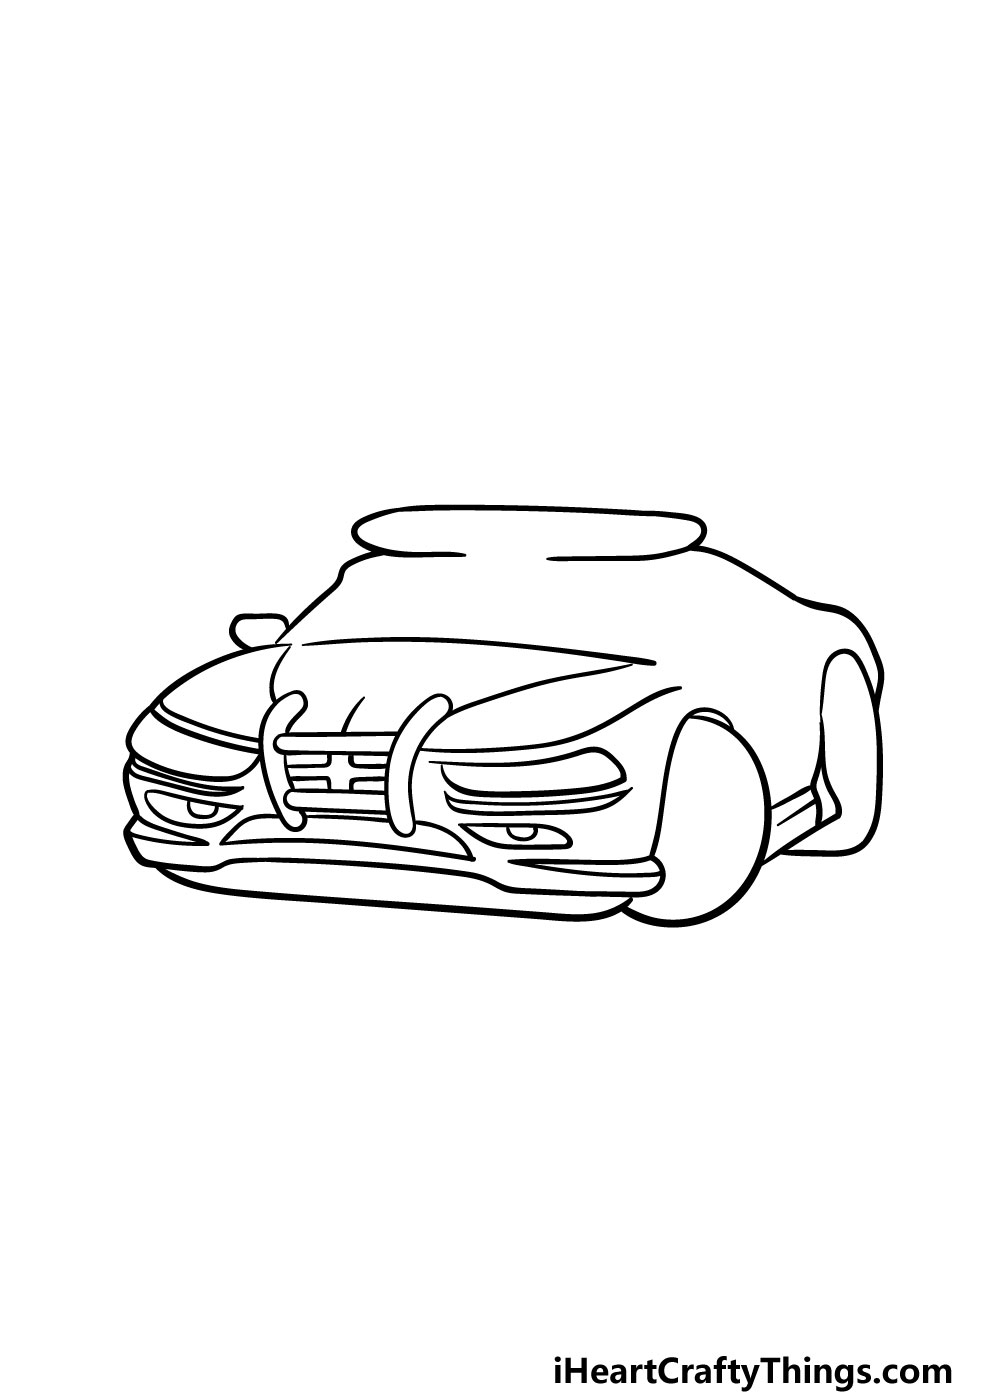 drawing a police car step 4